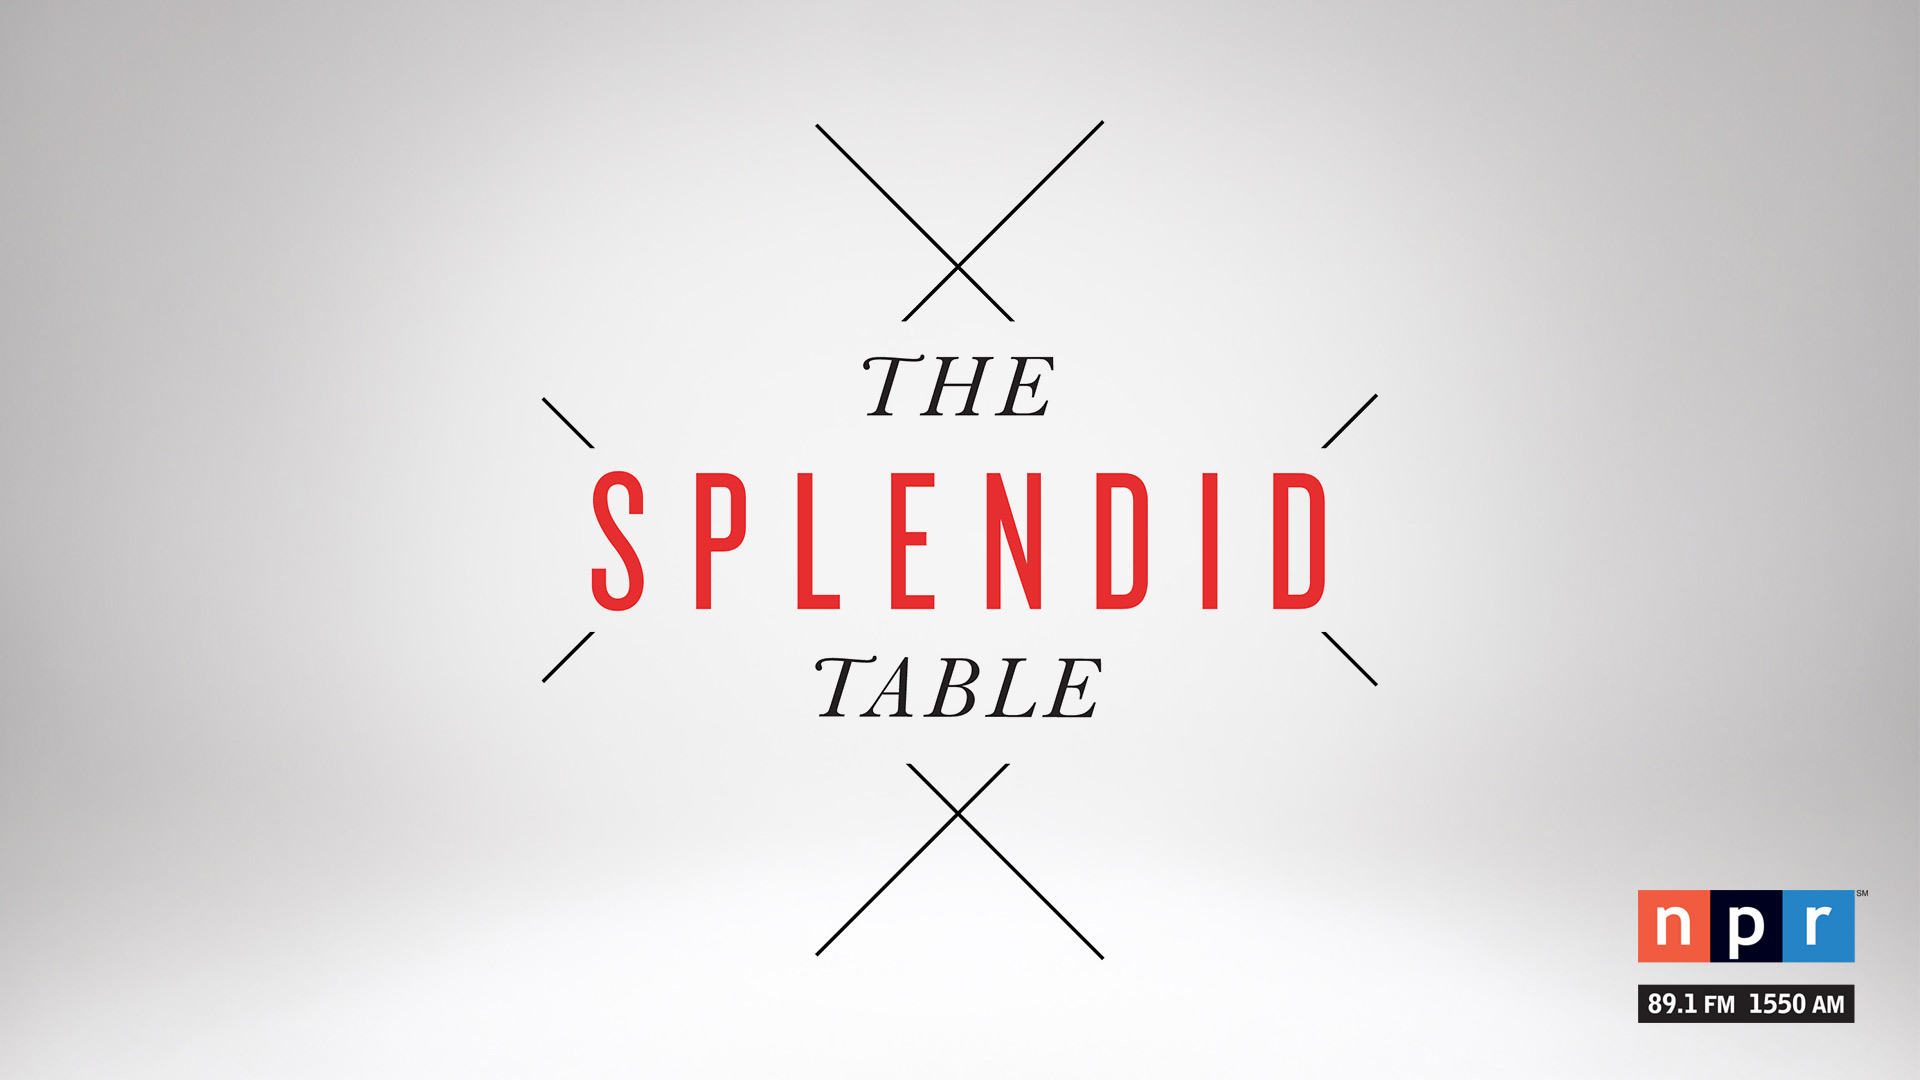 The Splendid Table airs Saturdays on NPR 89.1.